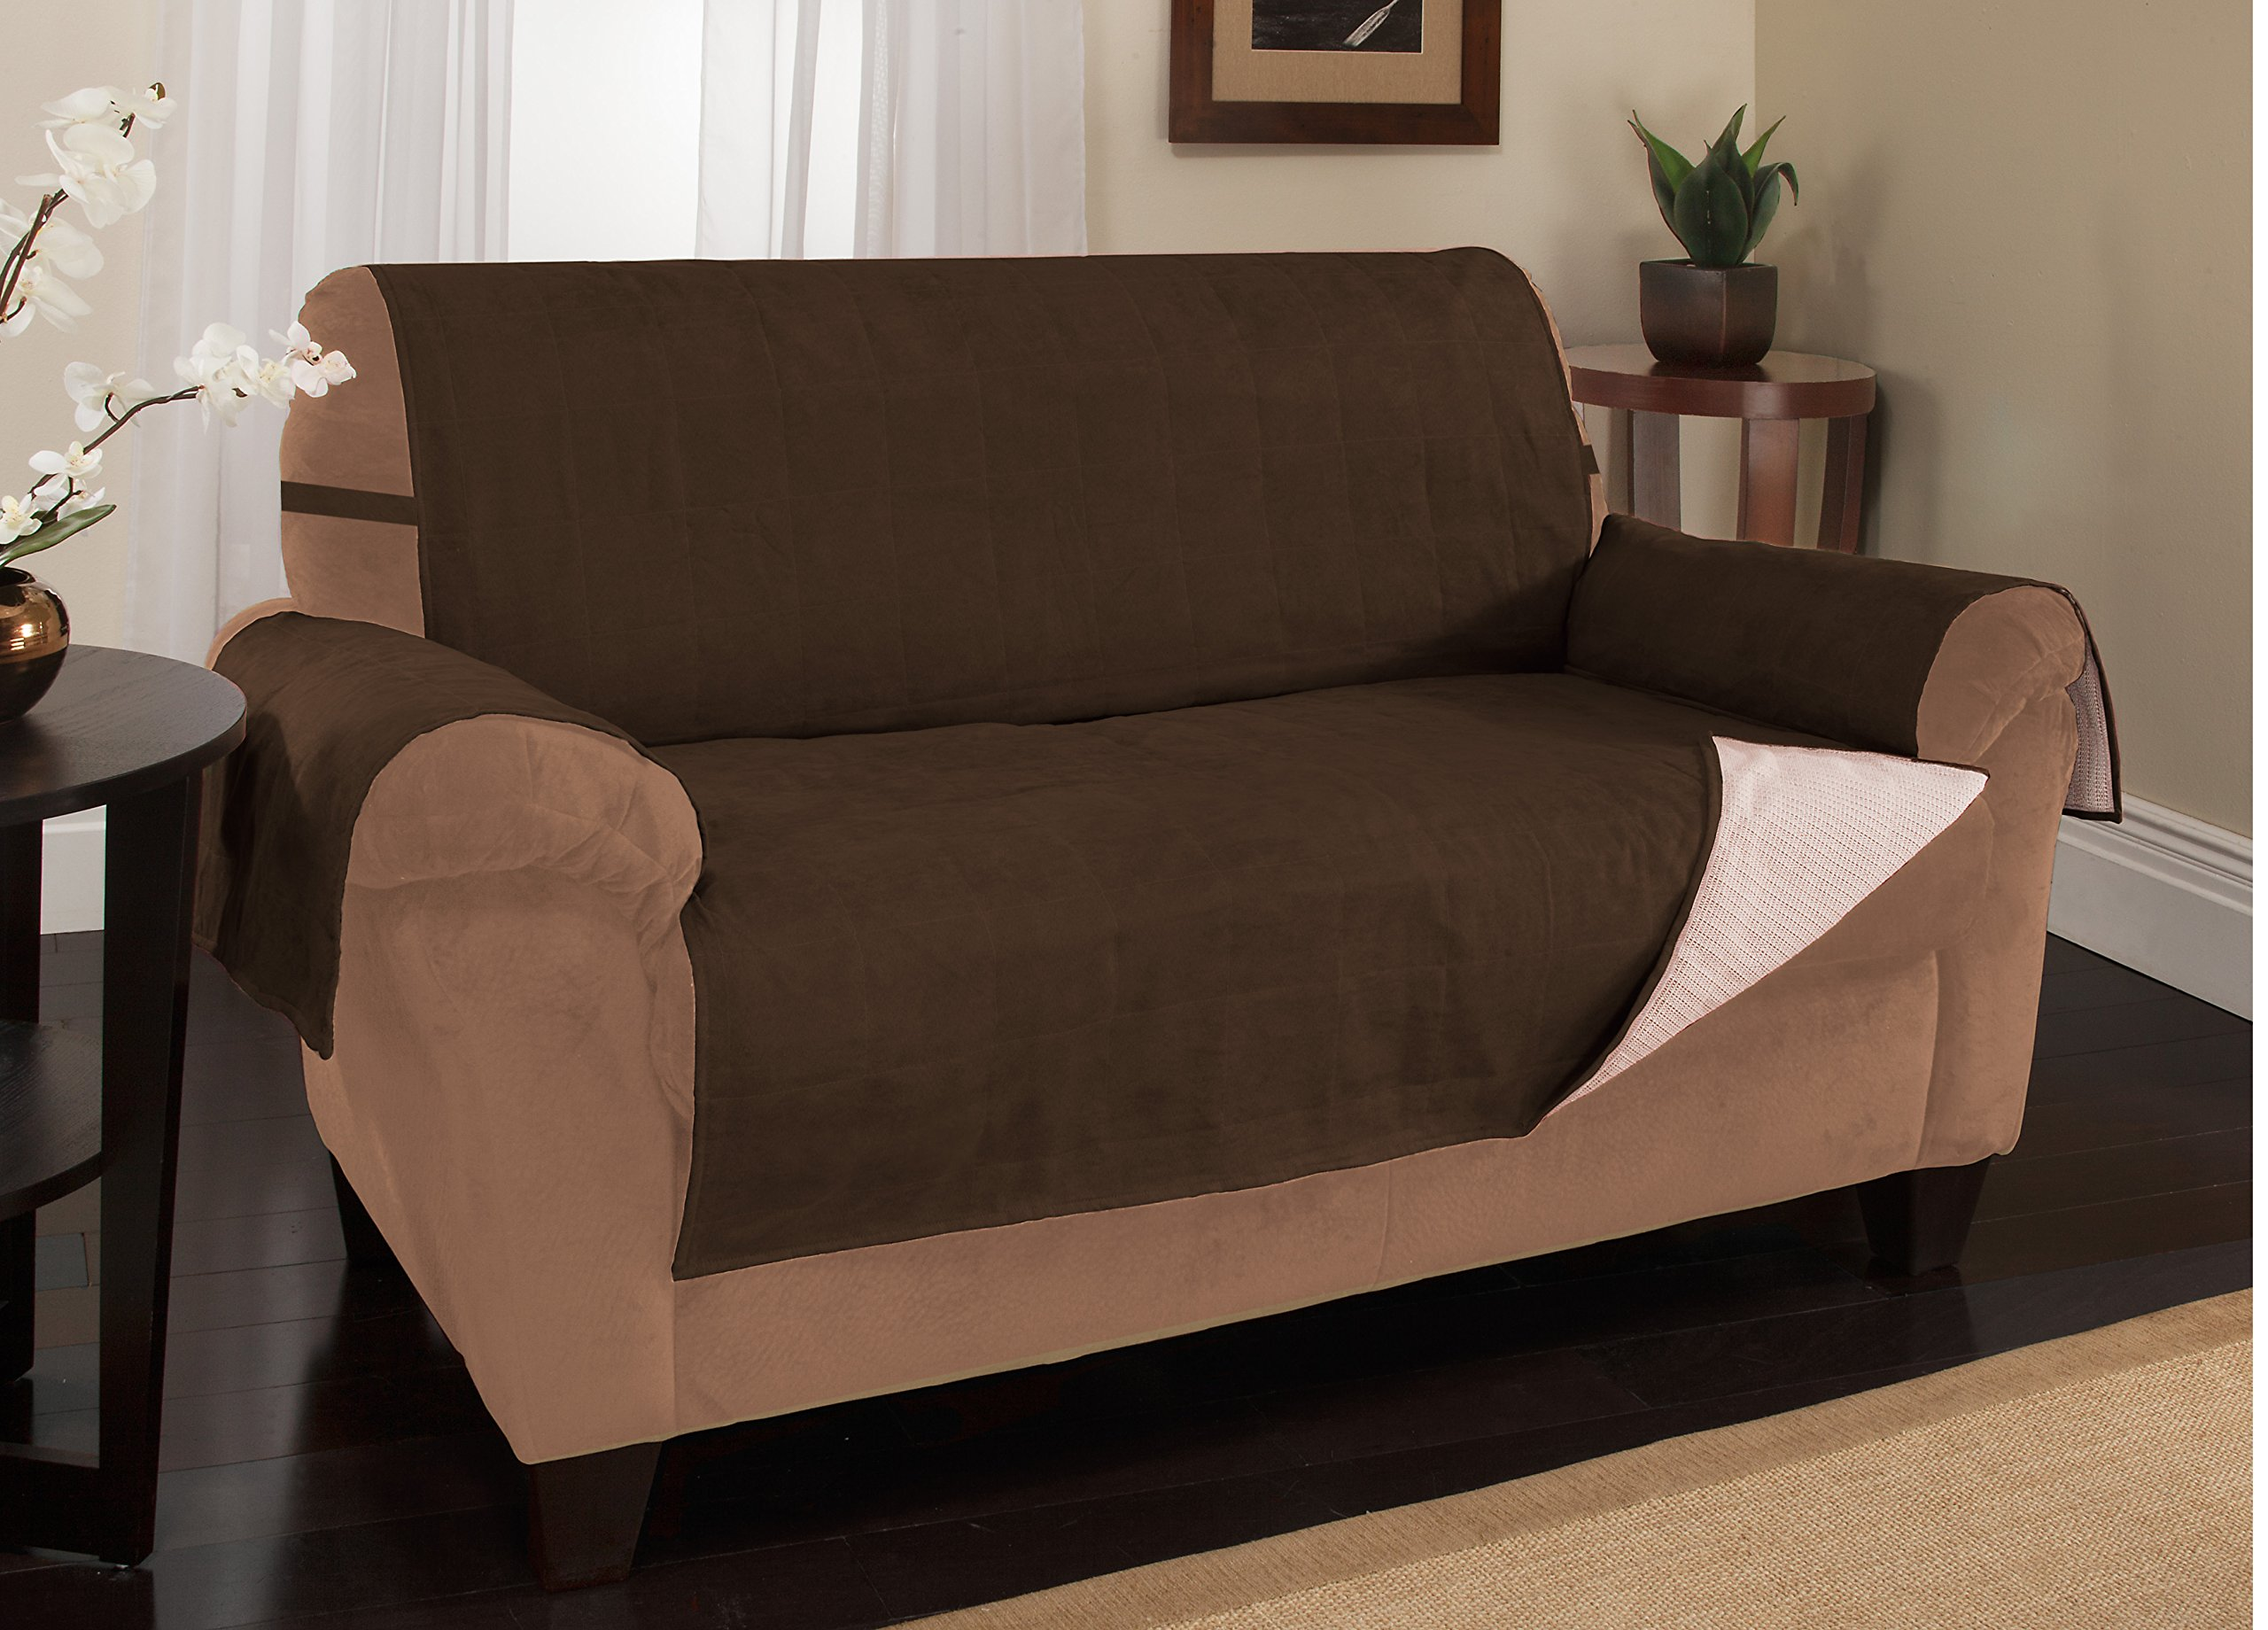 Furniture Fresh - New and Improved Anti-Slip Grip Furniture Protector, Loveseat Cover, Slipcover, with Stay Put Straps and Water Resistant Microsuede Fabric (Loveseat, Chocolate)